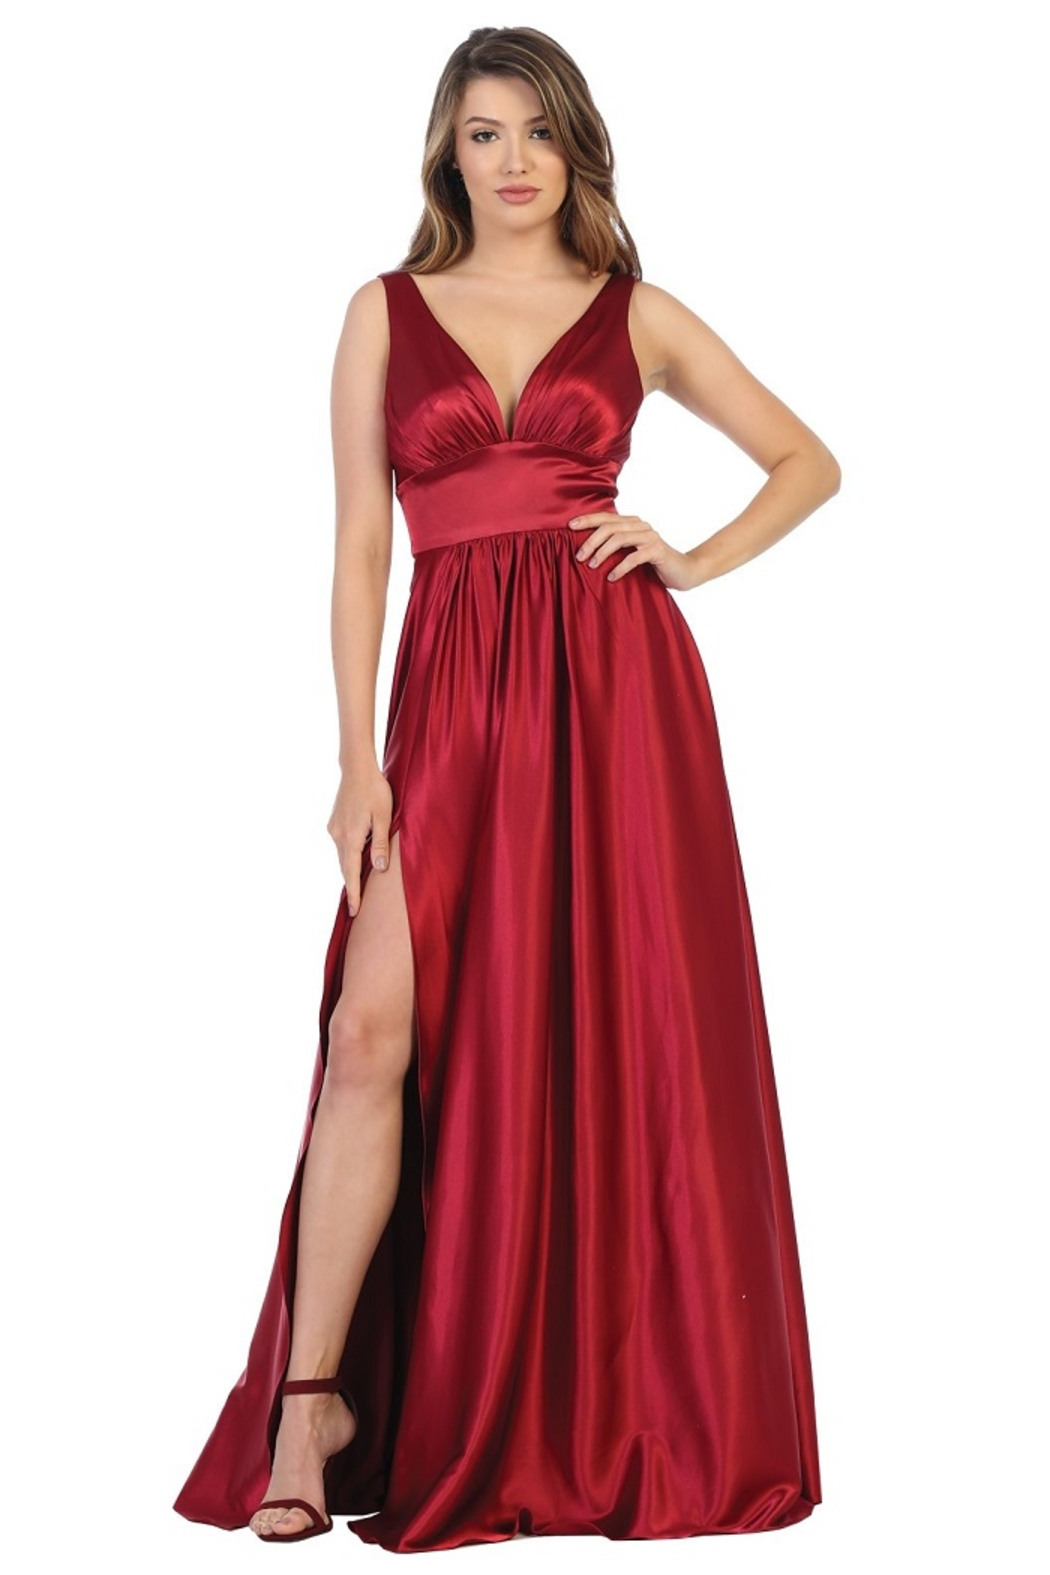 May Queen  Red Satin A-Line Formal Long Dress - Main Image